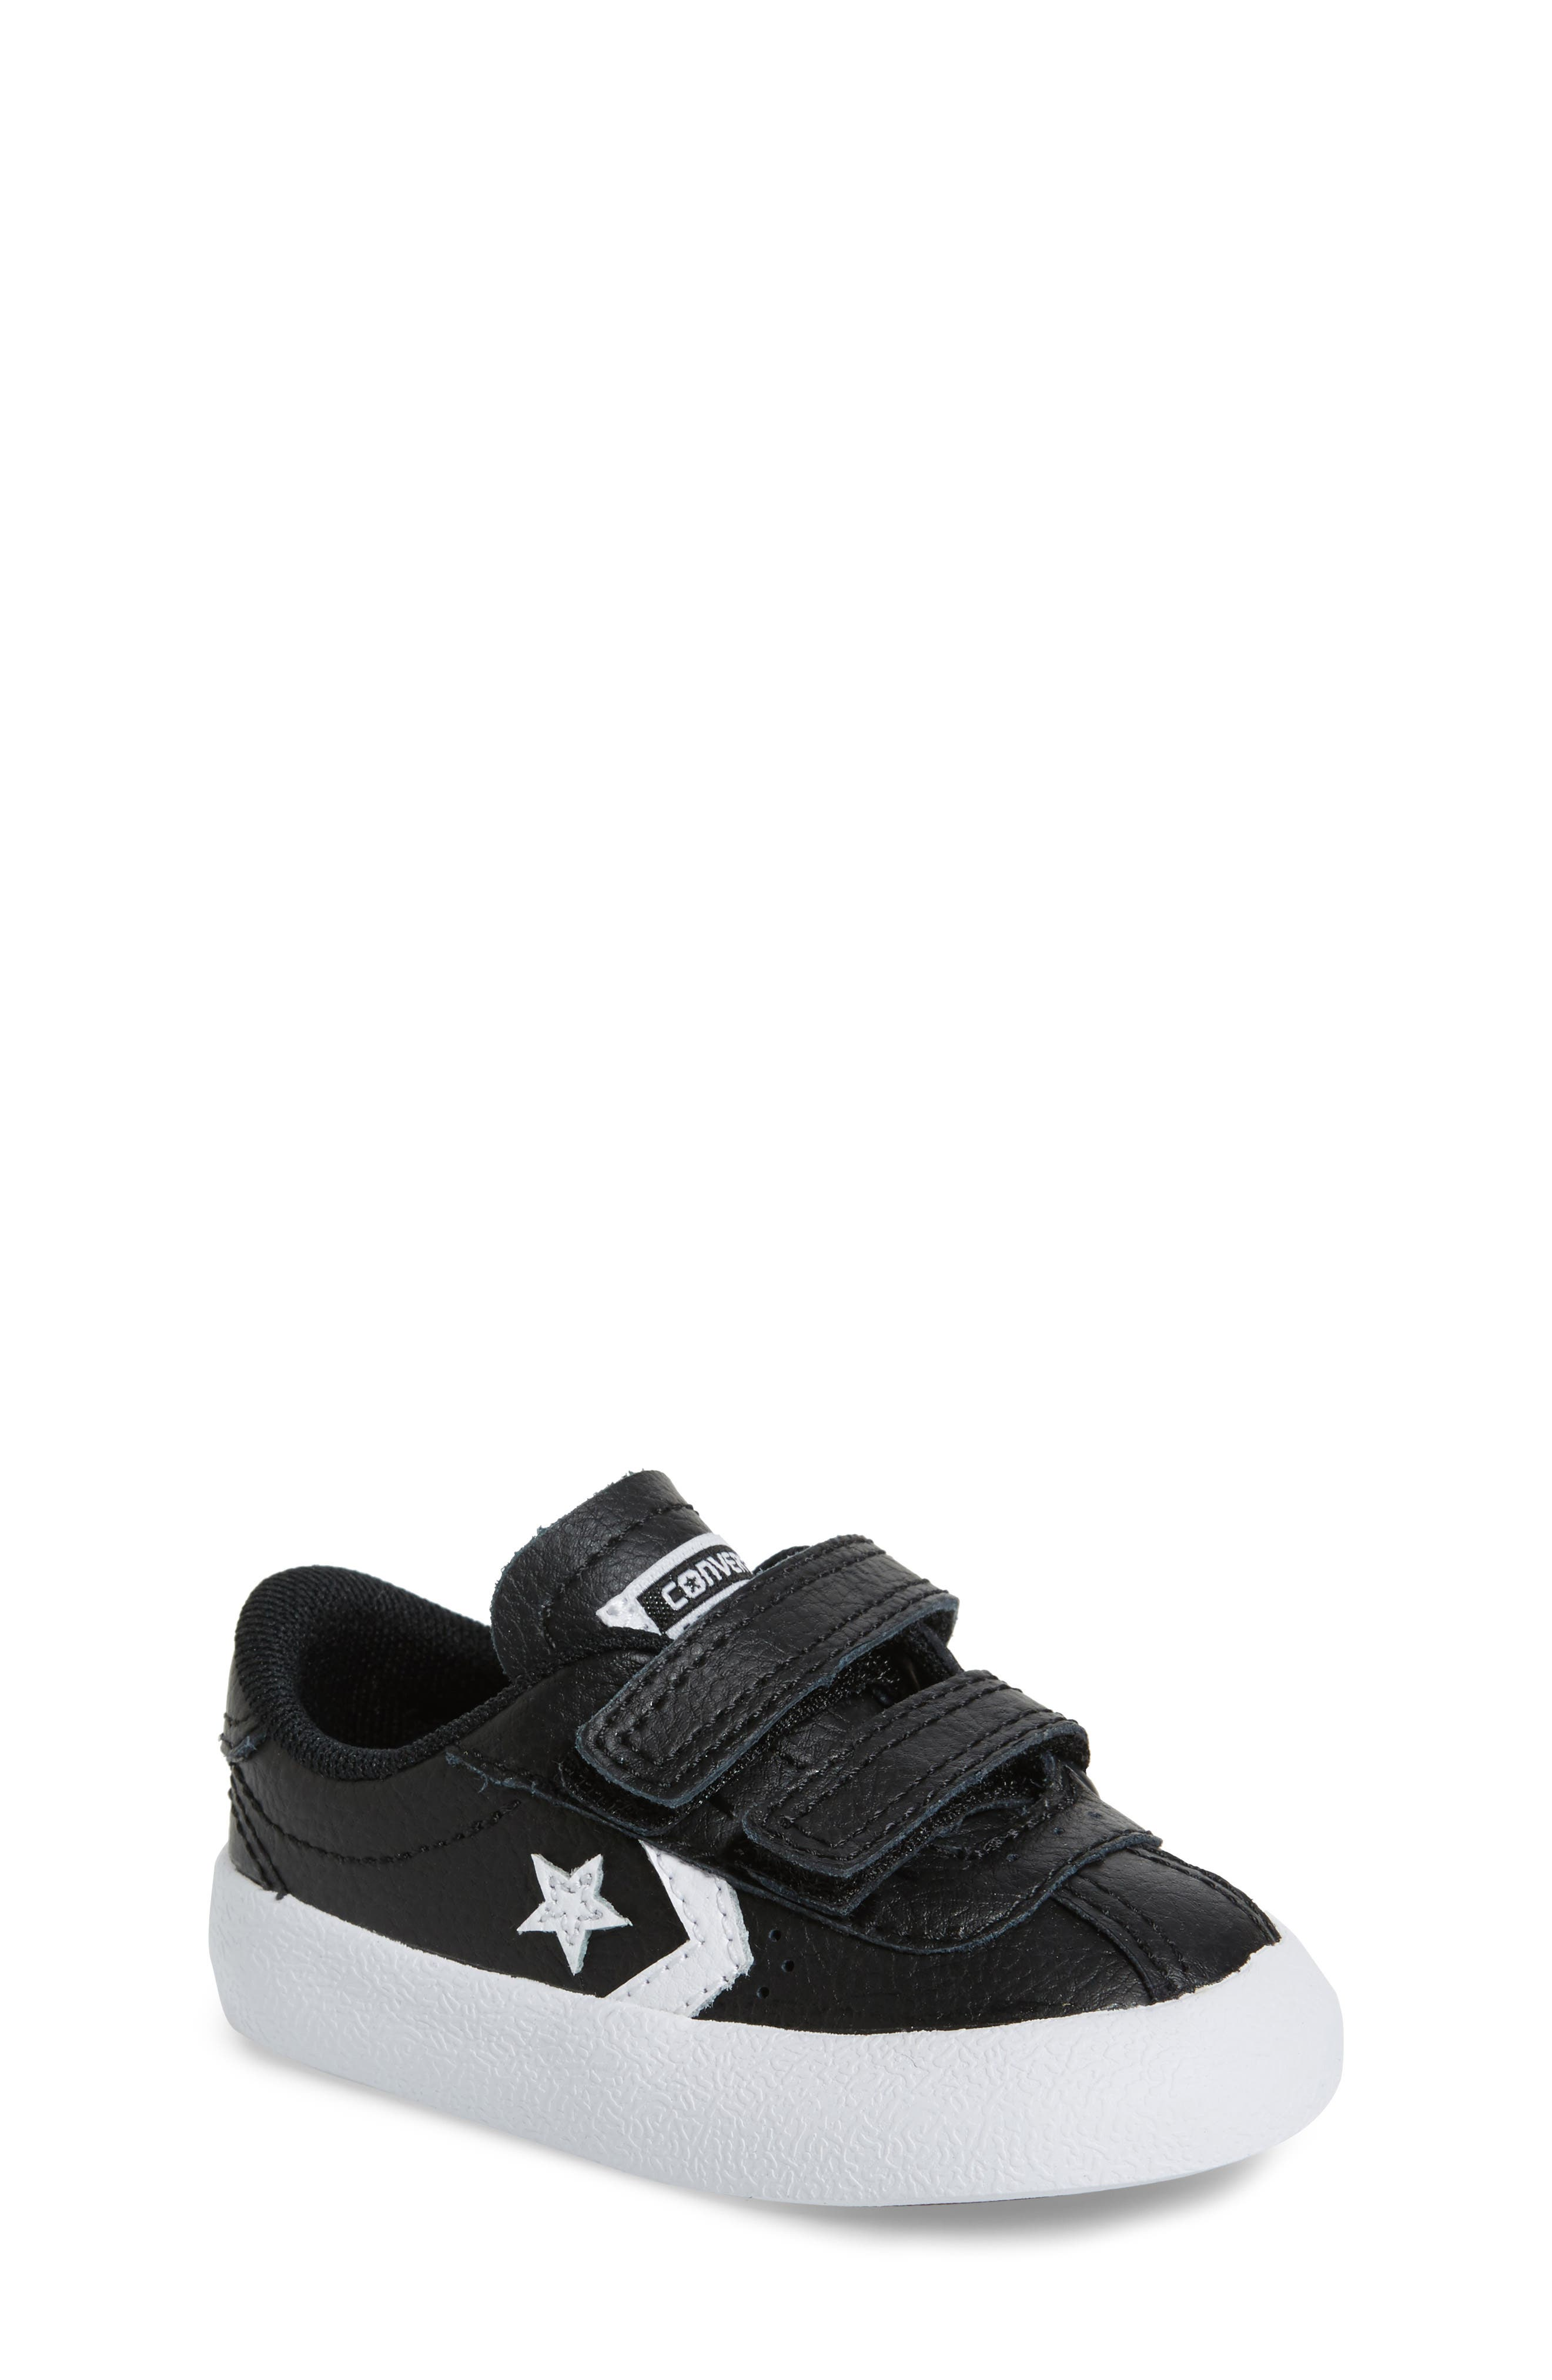 Alternate Image 1 Selected - Converse Breakpoint Pro Sneaker (Baby, Walker & Toddler)